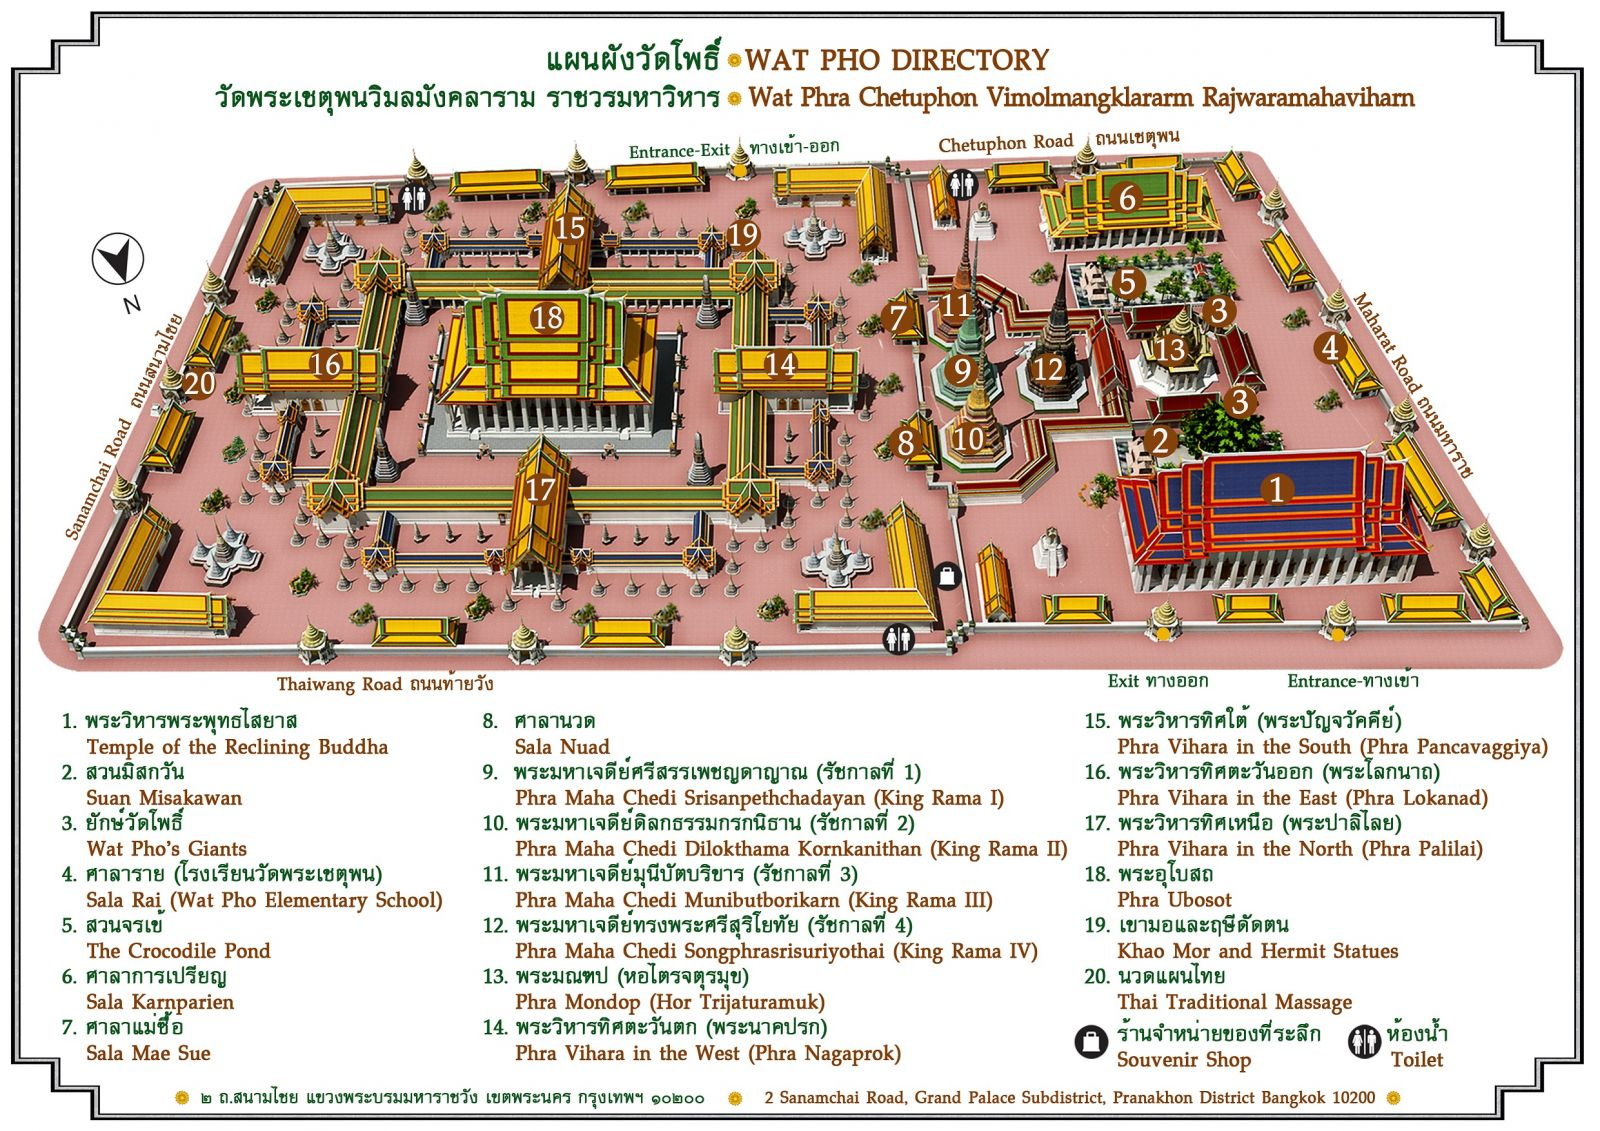 Map of Wat Pho in Bangkok